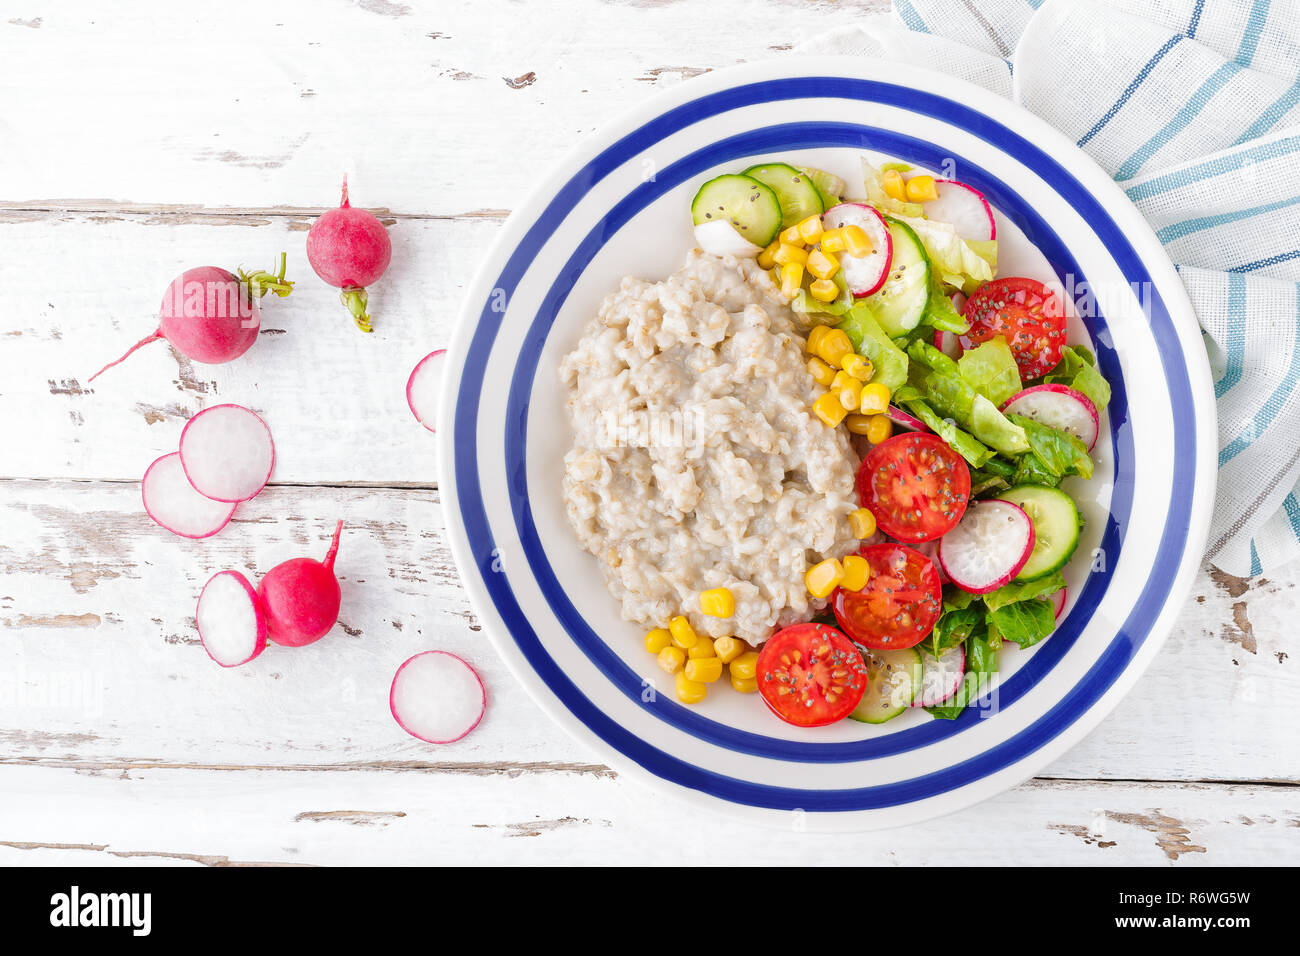 Oatmeal porridge with vegetable salad of fresh tomatoes, corn, cucumber and lettuce. Light, healthy and tasty dietary breakfast. Top view - Stock Image